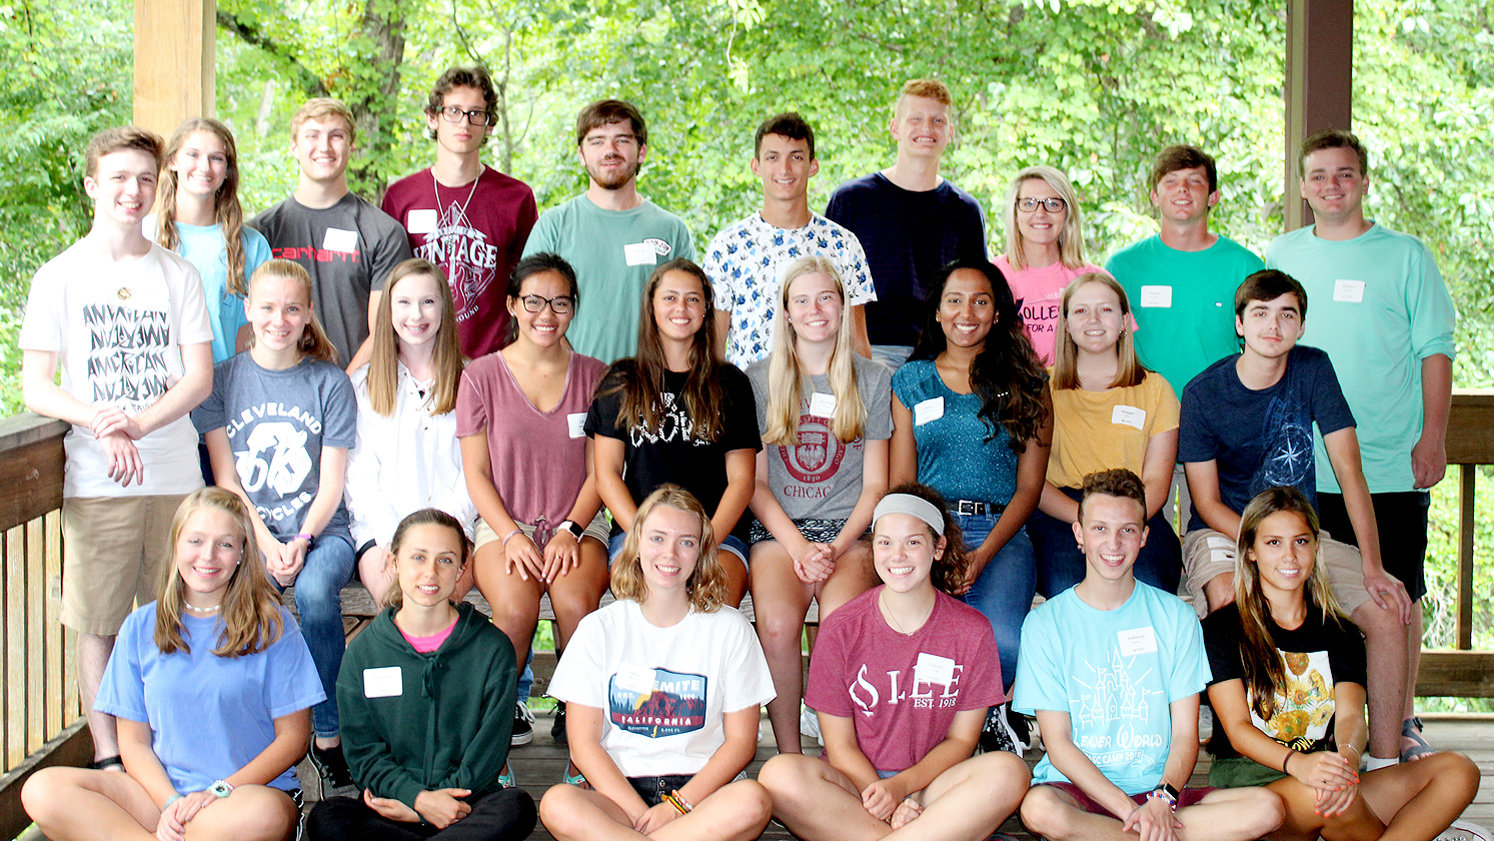 TWENTY-FOUR exceptional young people from Bradley Central, Cleveland and Walker Valley High Schools and Tennessee Christian Preparatory School recently participated in a daylong retreat to begin their Youth Leadership Class of 2019-20 experience. Youth Leadership is a workforce development initiative of the Cleveland/Bradley Chamber of Commerce.